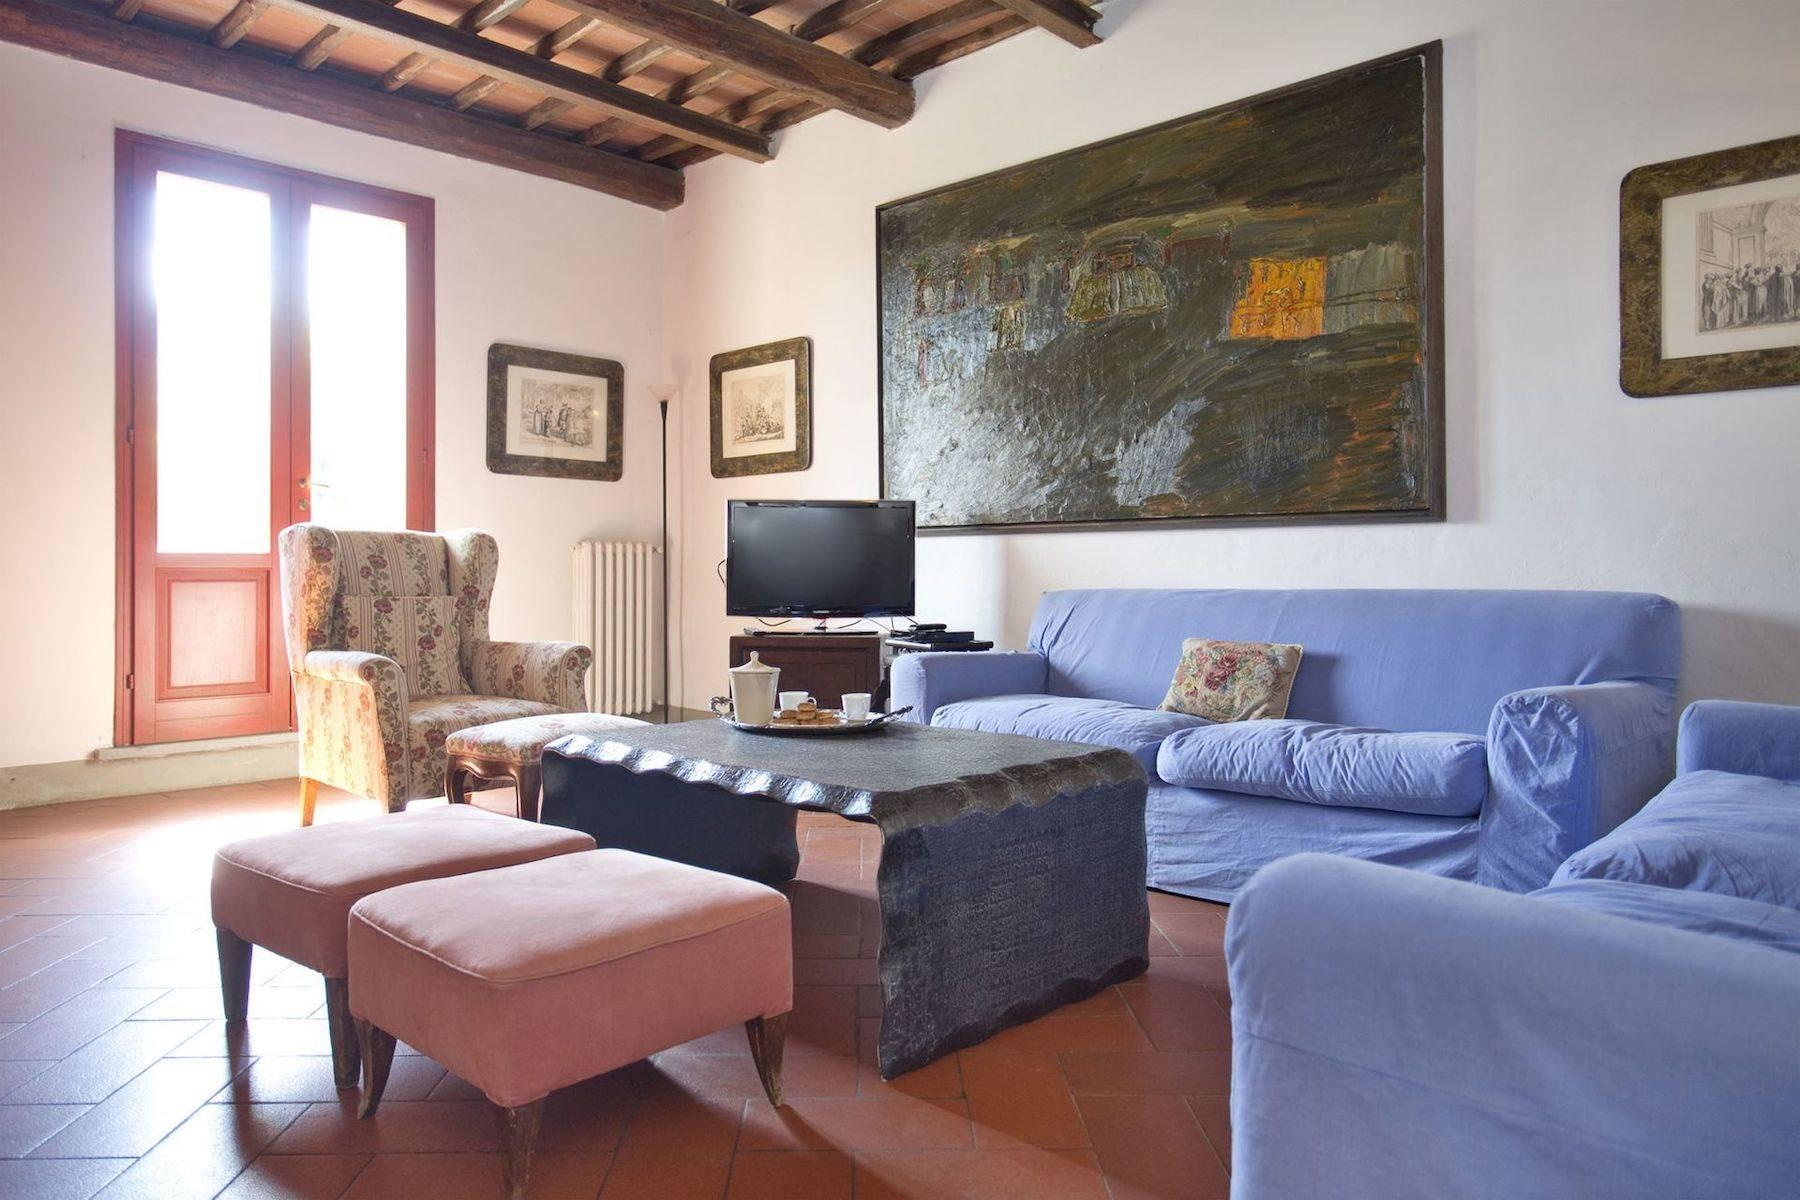 Beautiful charming countryside 6 bedroom villa with pool in Bagno a Ripoli - 8